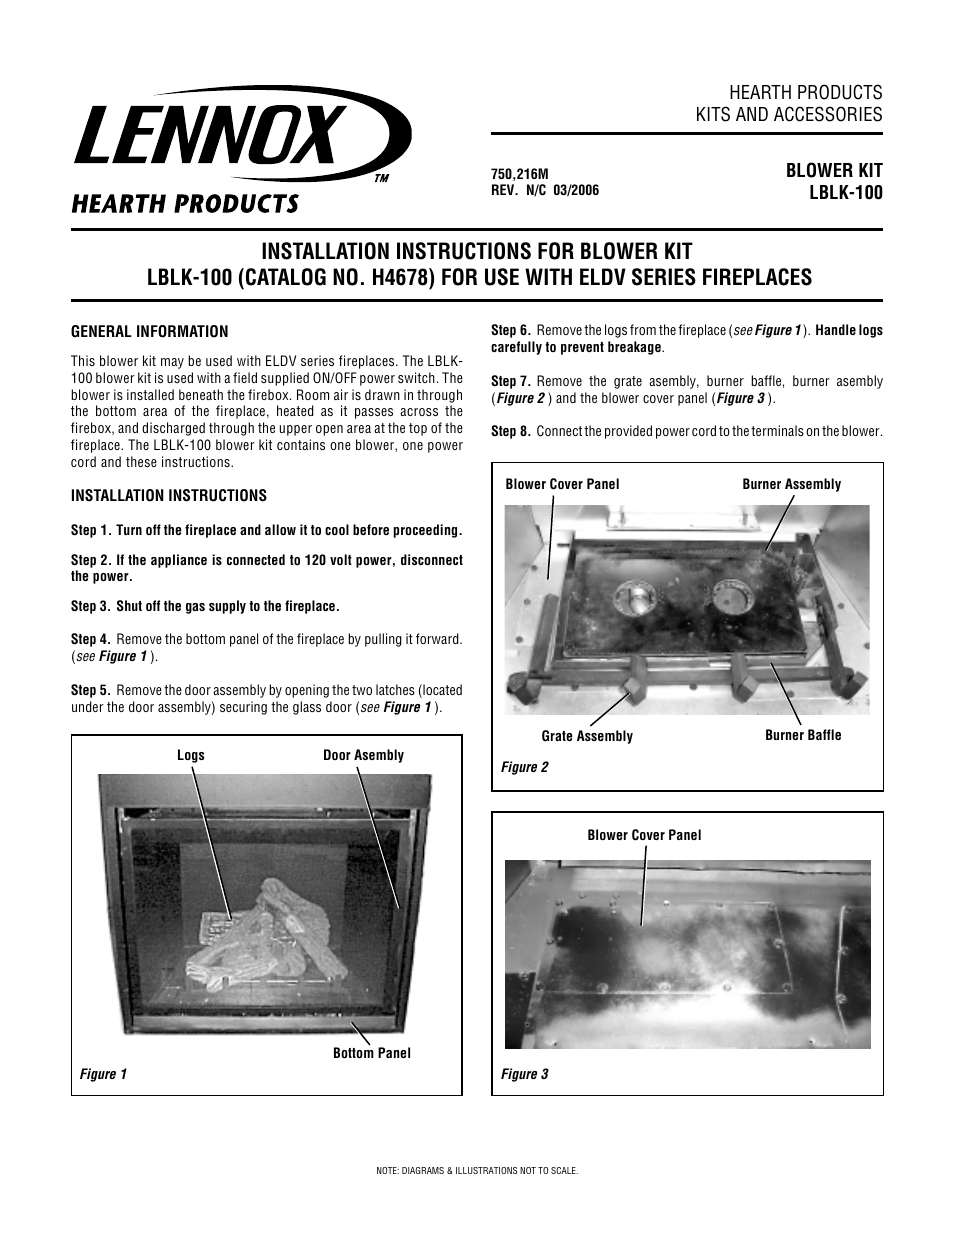 Fireplace Blower Kits Lennox Hearth Blower Kit Lblk 100 User Manual 4 Pages